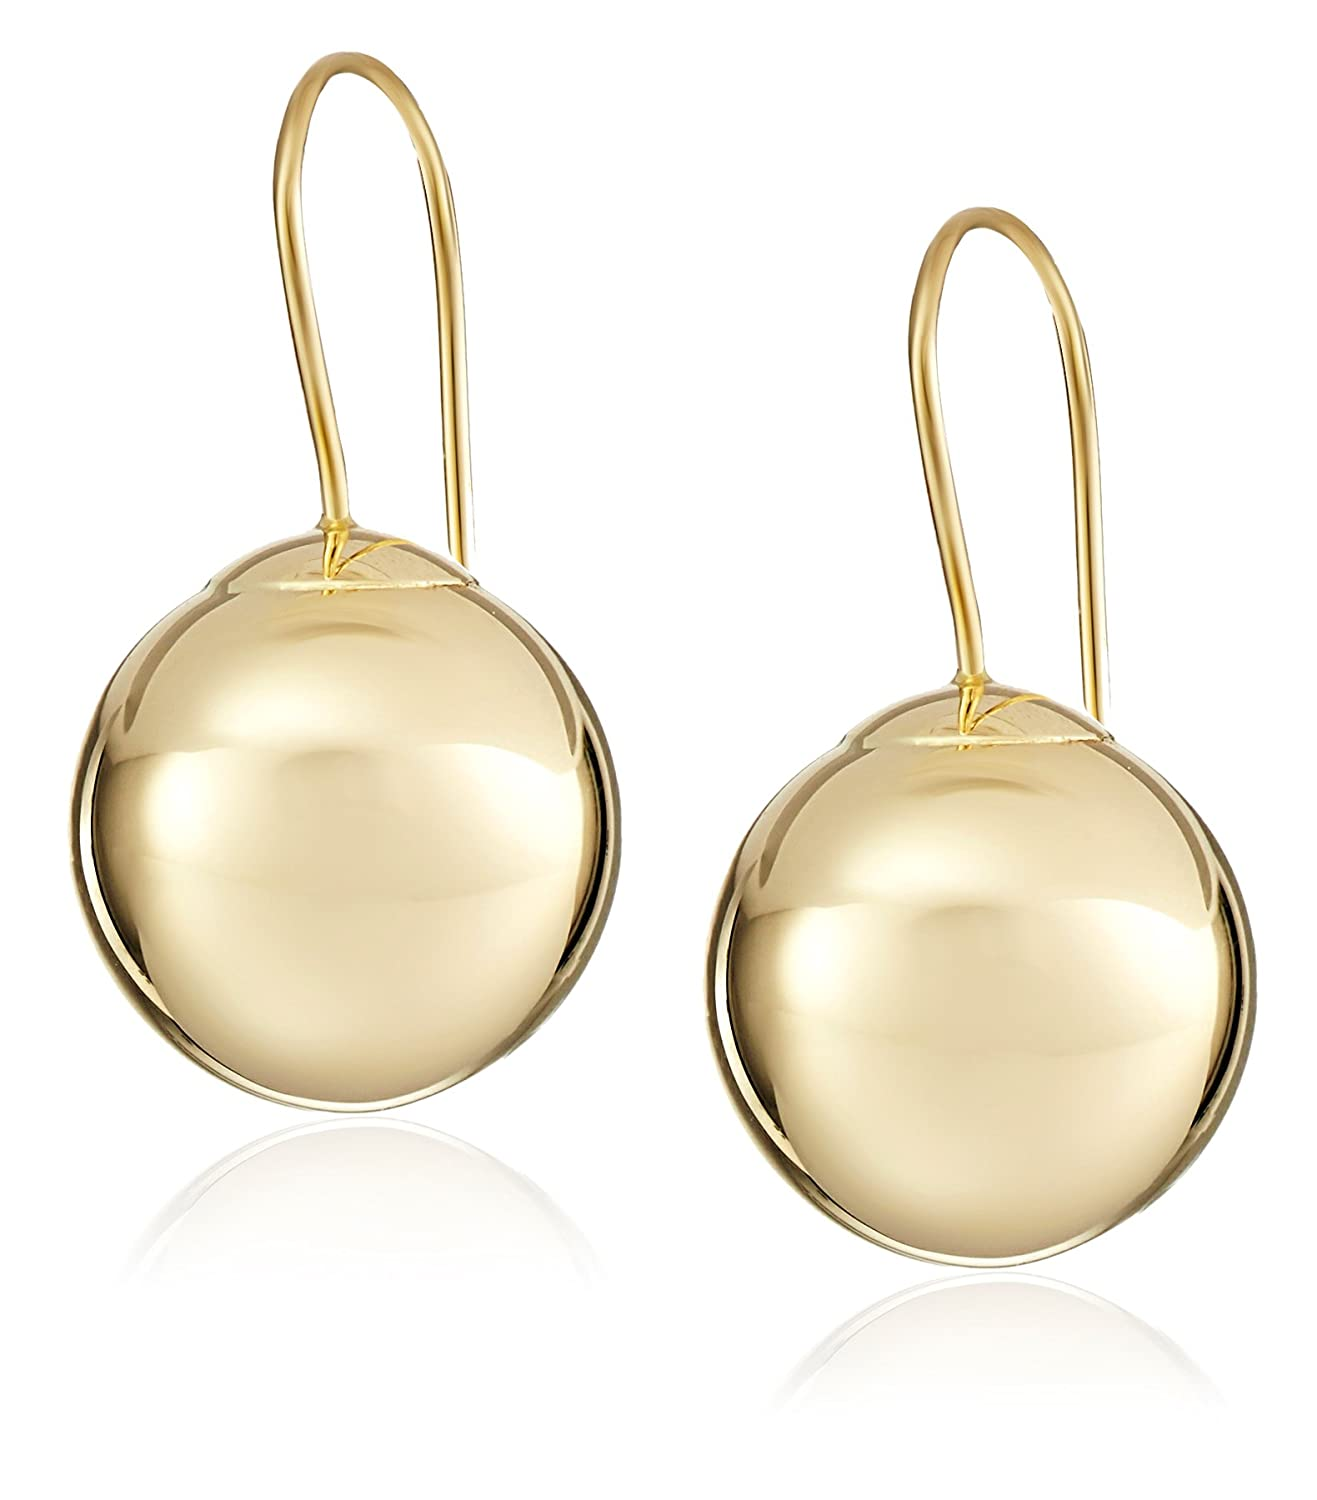 gold earrings sierra designs xnzycjy qvc by italian